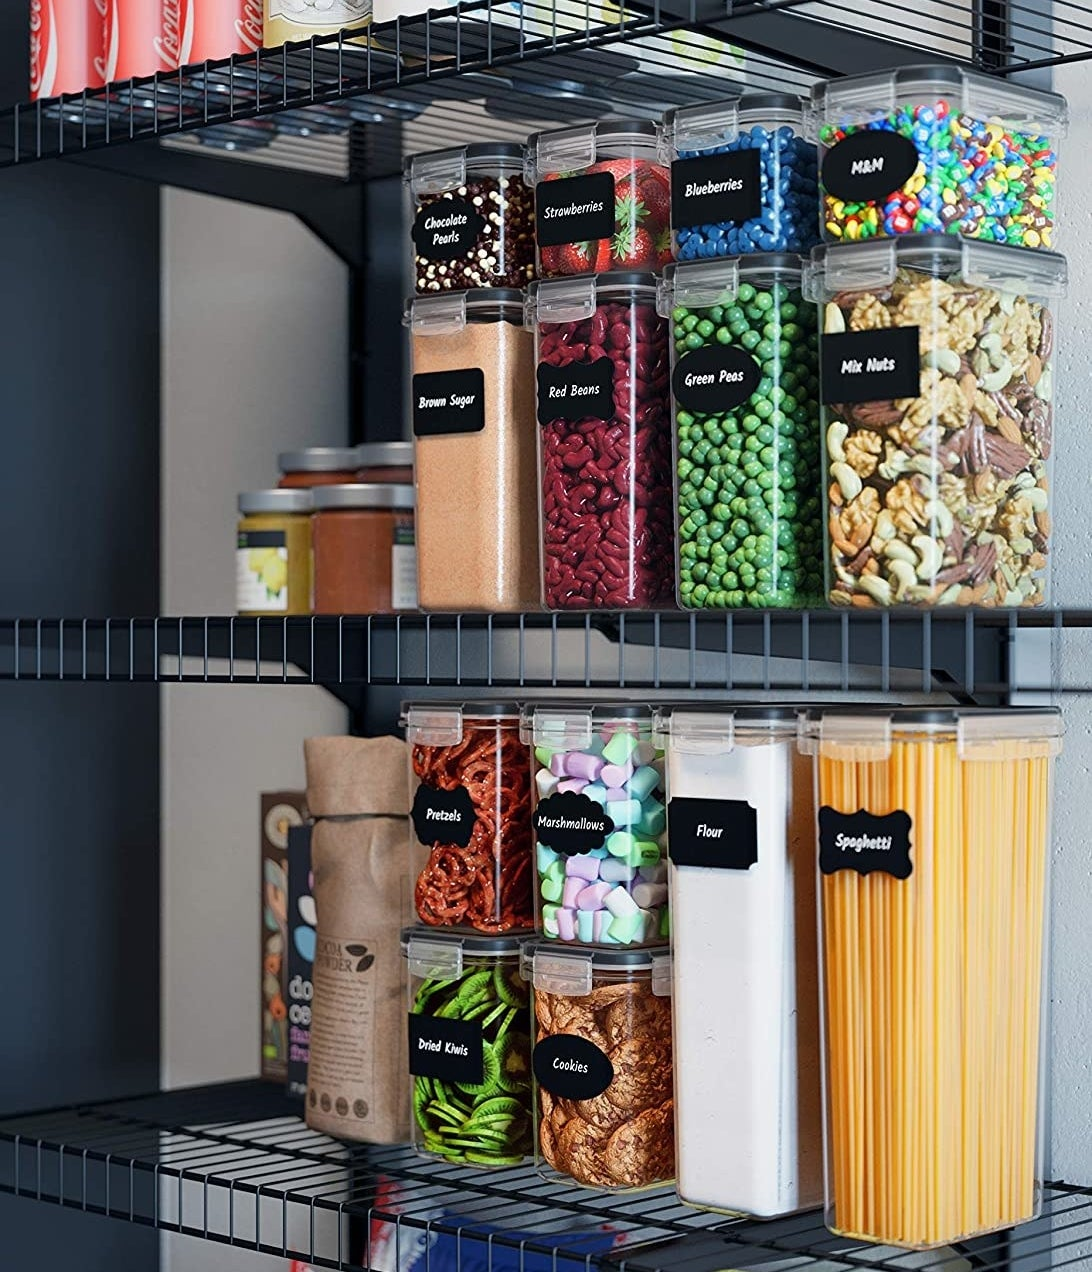 A set of plastic food containers with chalkboard labels arranged neatly on a pantry shelf